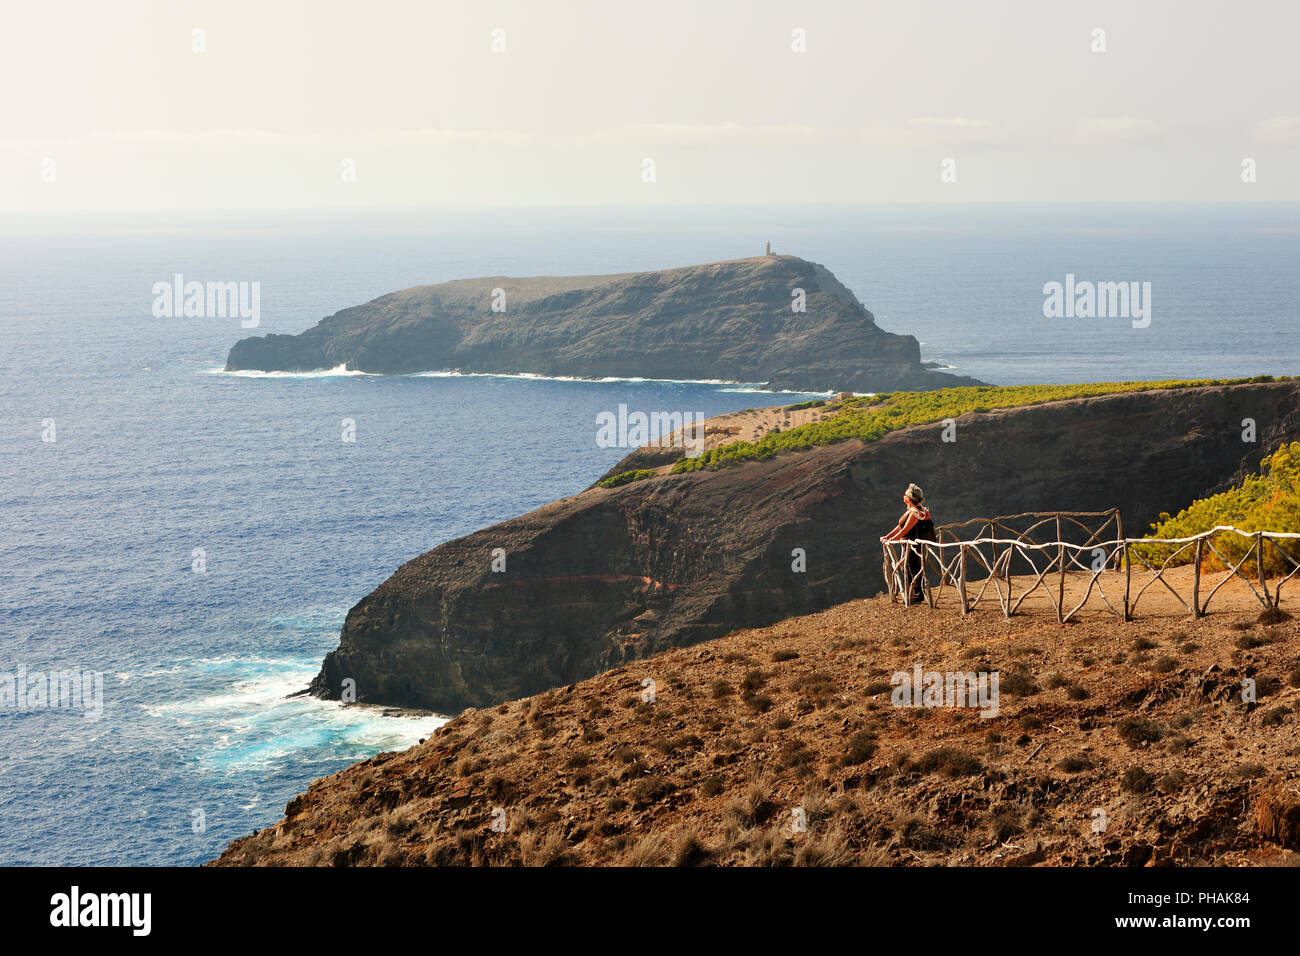 View of Ilhéu do Ferro. Porto Santo island, Madeira. Portugal - Stock Image